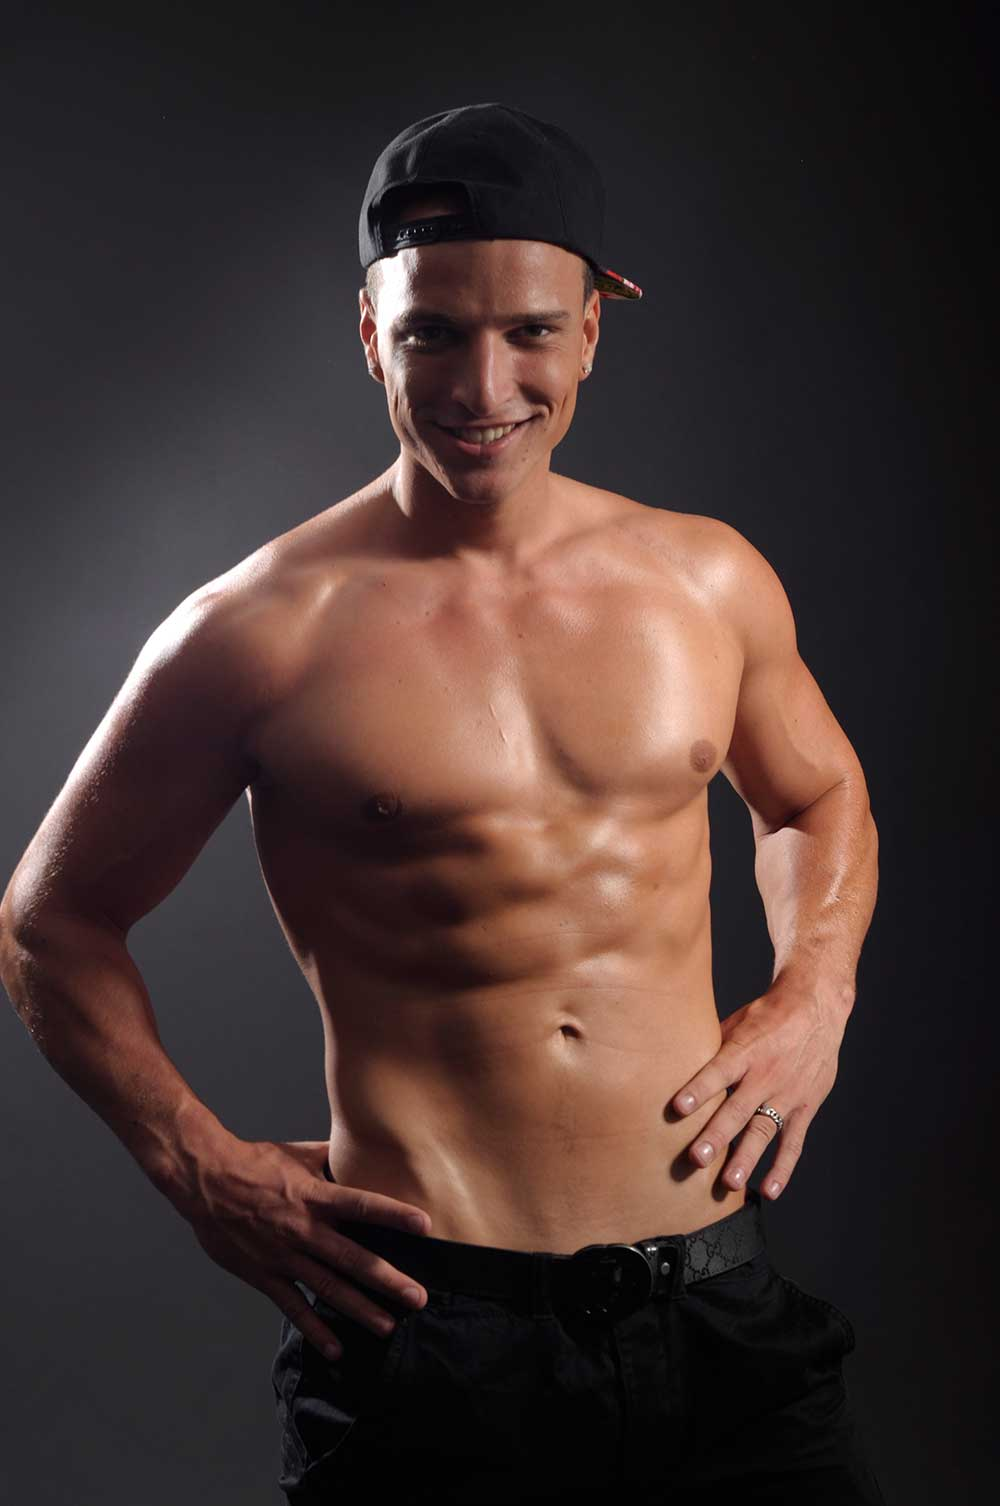 Magic Mike stripper, MooieStrippers.nl, mooie stripper, stripper Wes1, stripper huren, gentleman striper, latino stripper, mooie stripper boeken, stripper boeken, stripper bestellen, limo, limousine, vrijgezellenfeest, bachelor party, stag do, stripper vanavond, stripper in Amsterdam, stripper in Rotterdam, stripper in Den Haag, stripper in Breda, stripper in Groningen, stripper in Friesland, stripper in Utrecht, stripper in Nijmegen, stripper in Almere, stripper in Zeeland, stripper in Leiden, stripper in Hoorn, stripper in Zaandam, stripper in Purmerend, stripper in Alkmaar